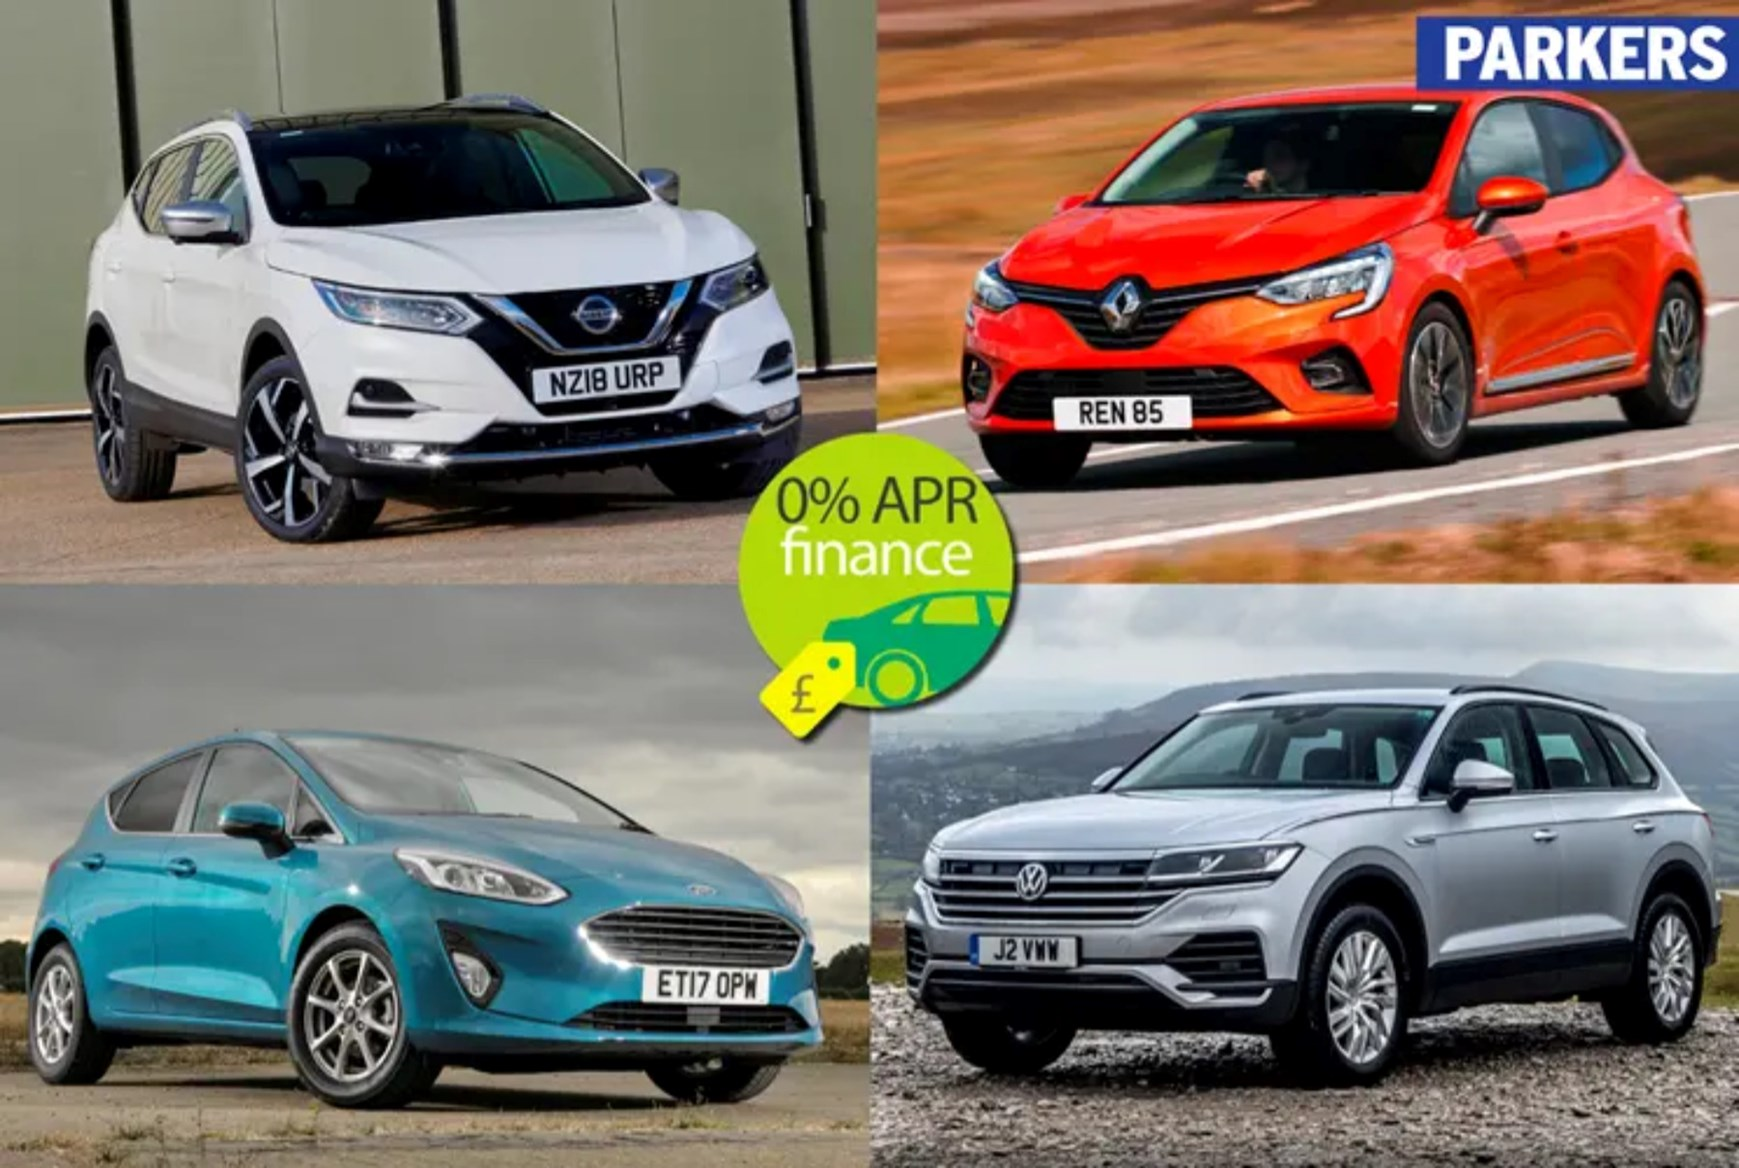 0 Car Finance Deals 2021 0 Apr Explained And List Of Offers Parkers